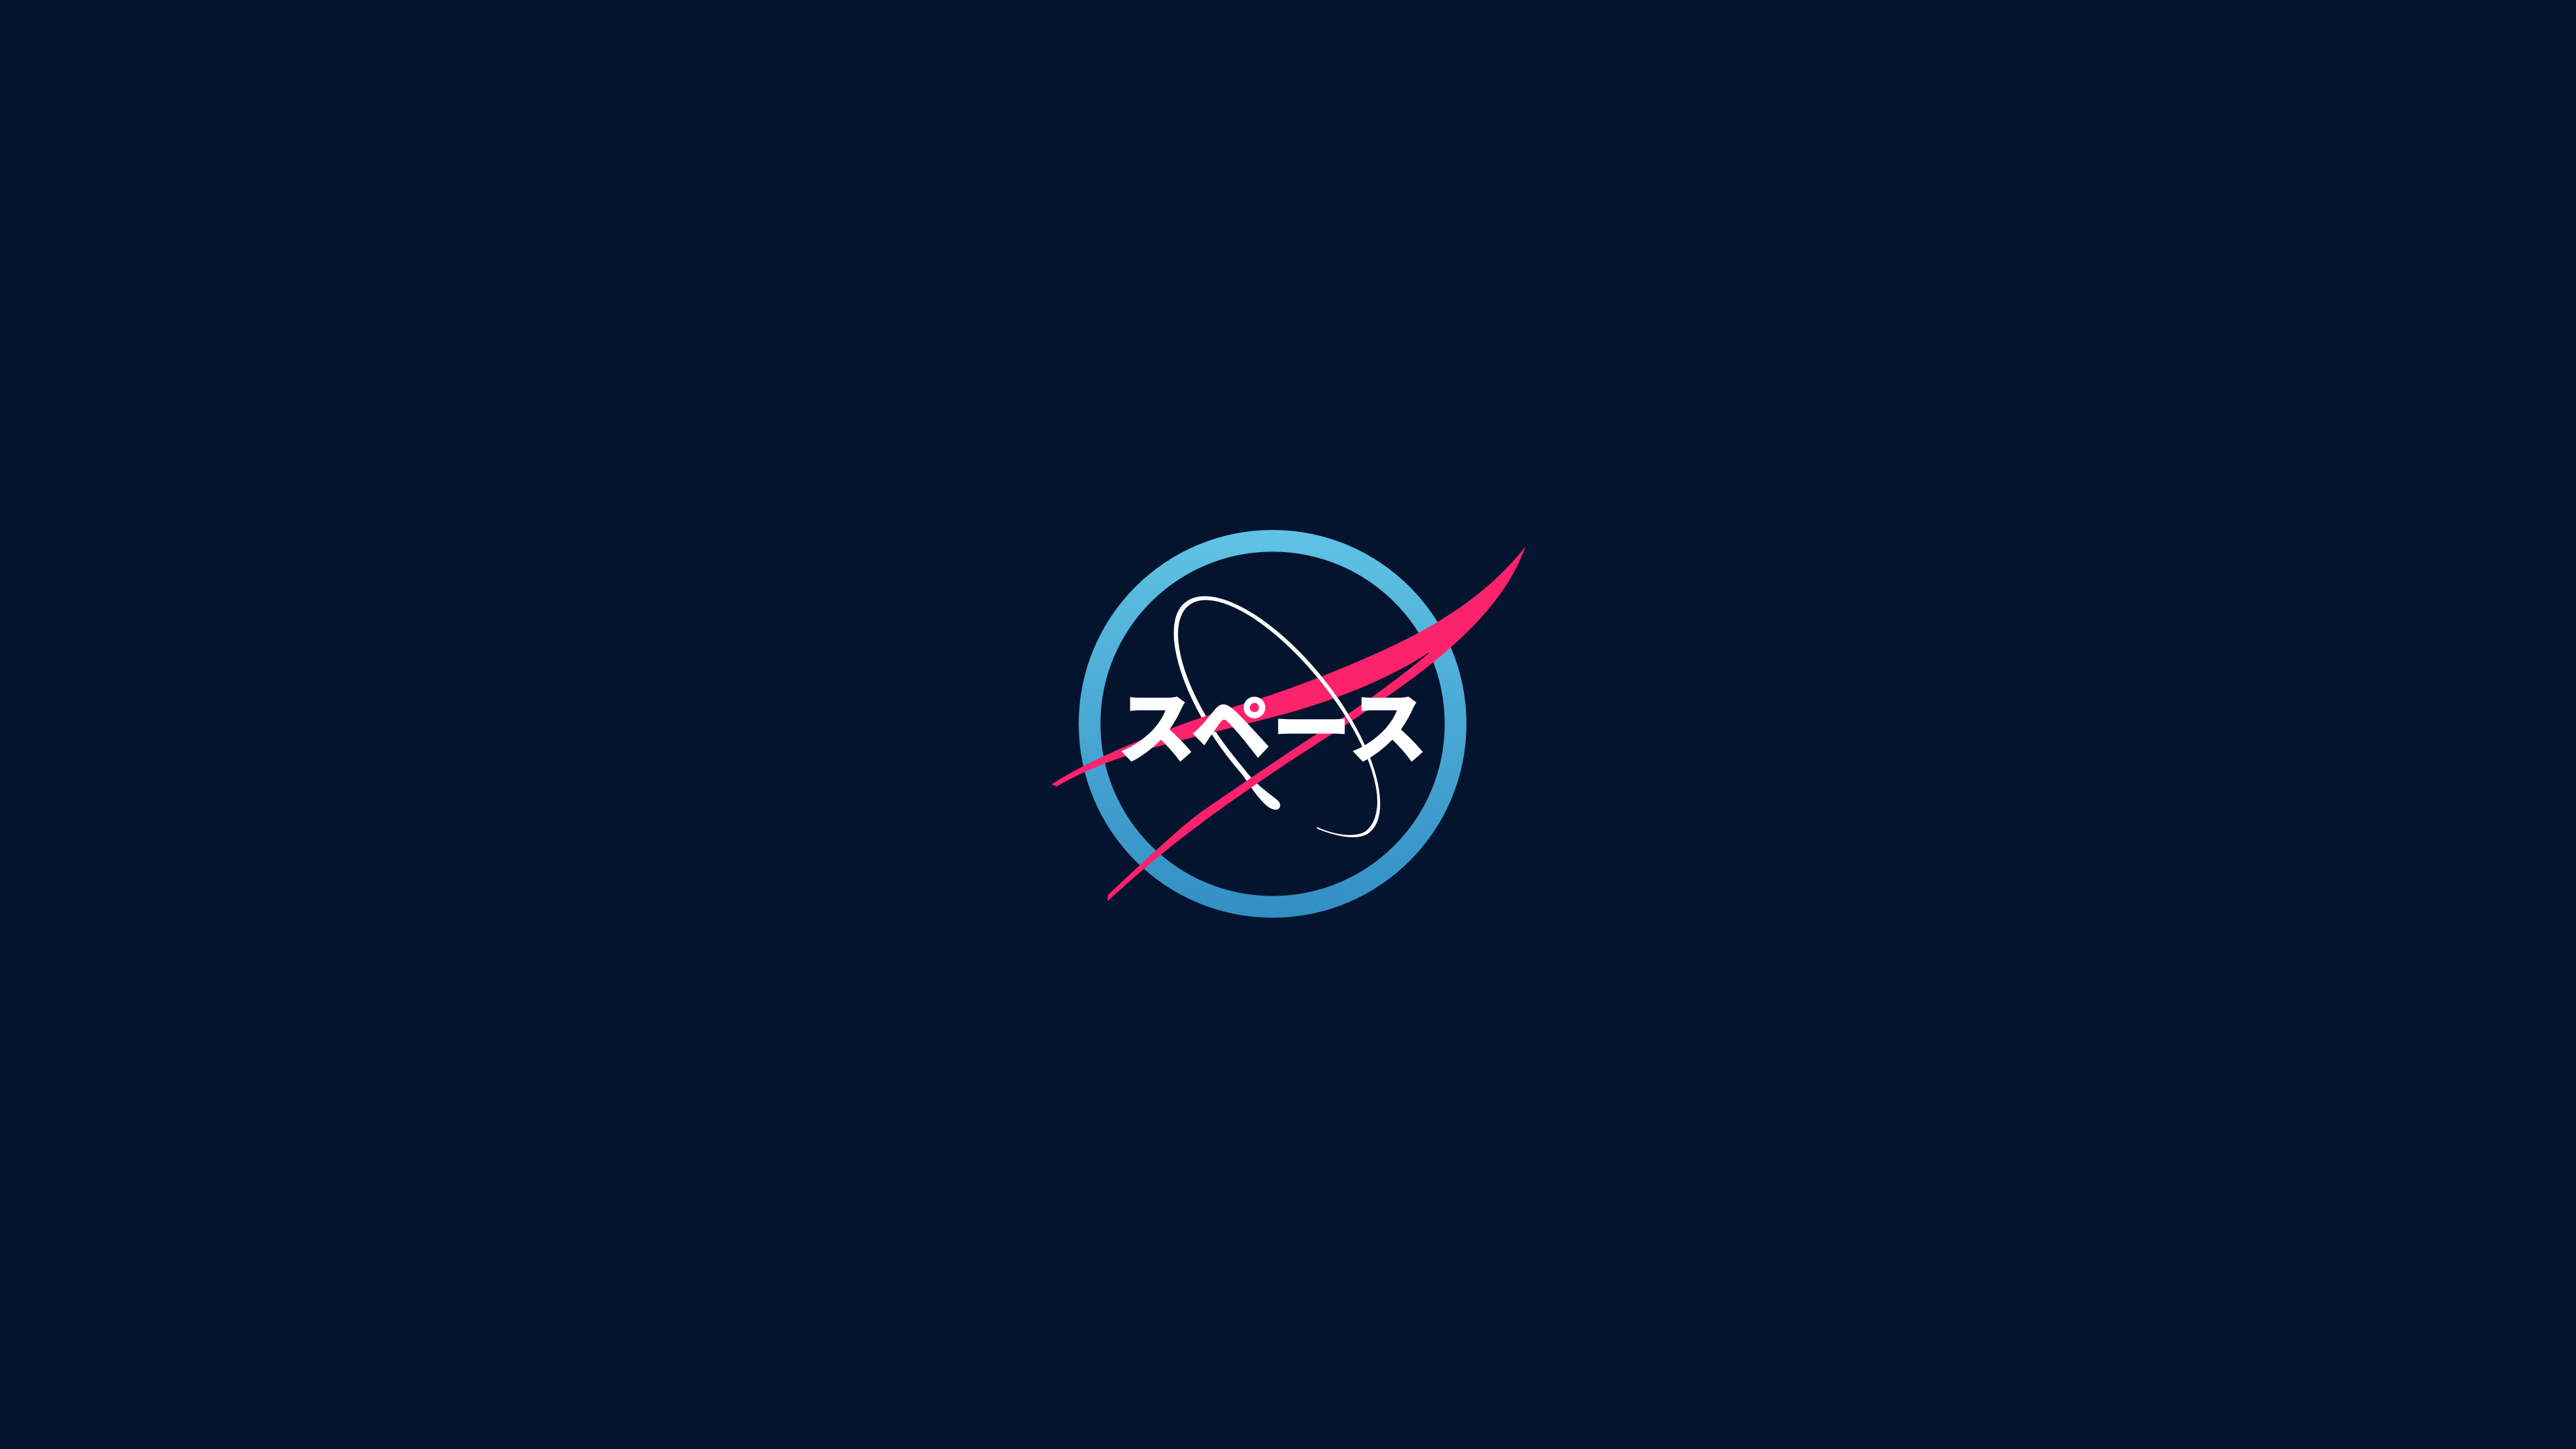 Nasa Japanese Art Logo Minimalism Modern 4k Wallpaper Hdwallpaper Desktop In 2020 Japanese Art Art Hd Wallpaper